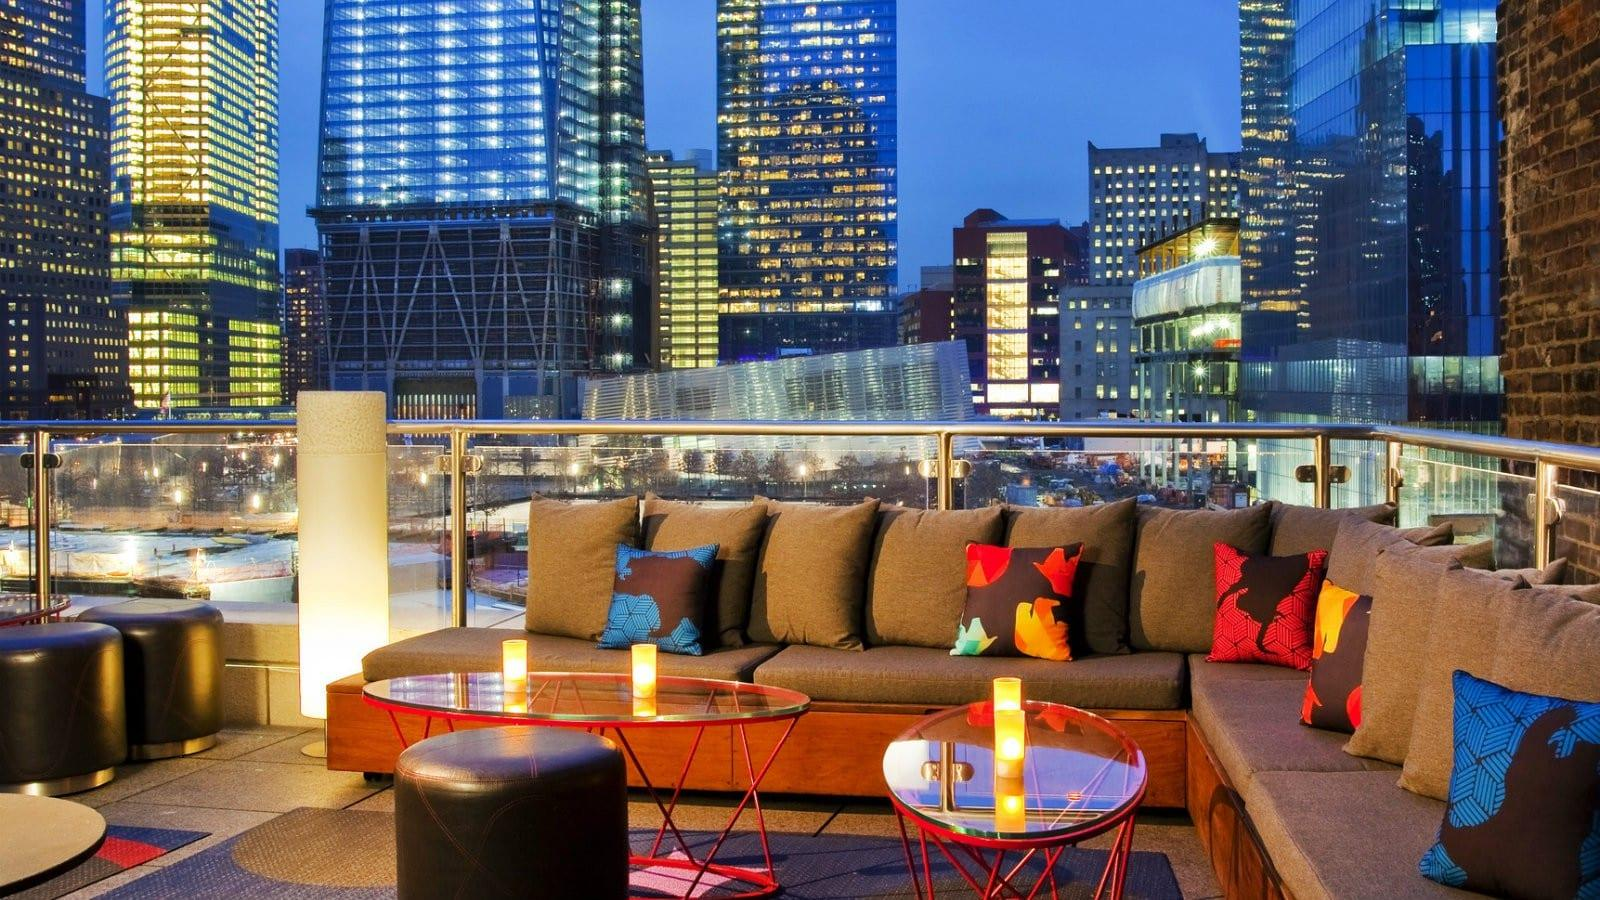 Seating at W Downtown rooftop bar